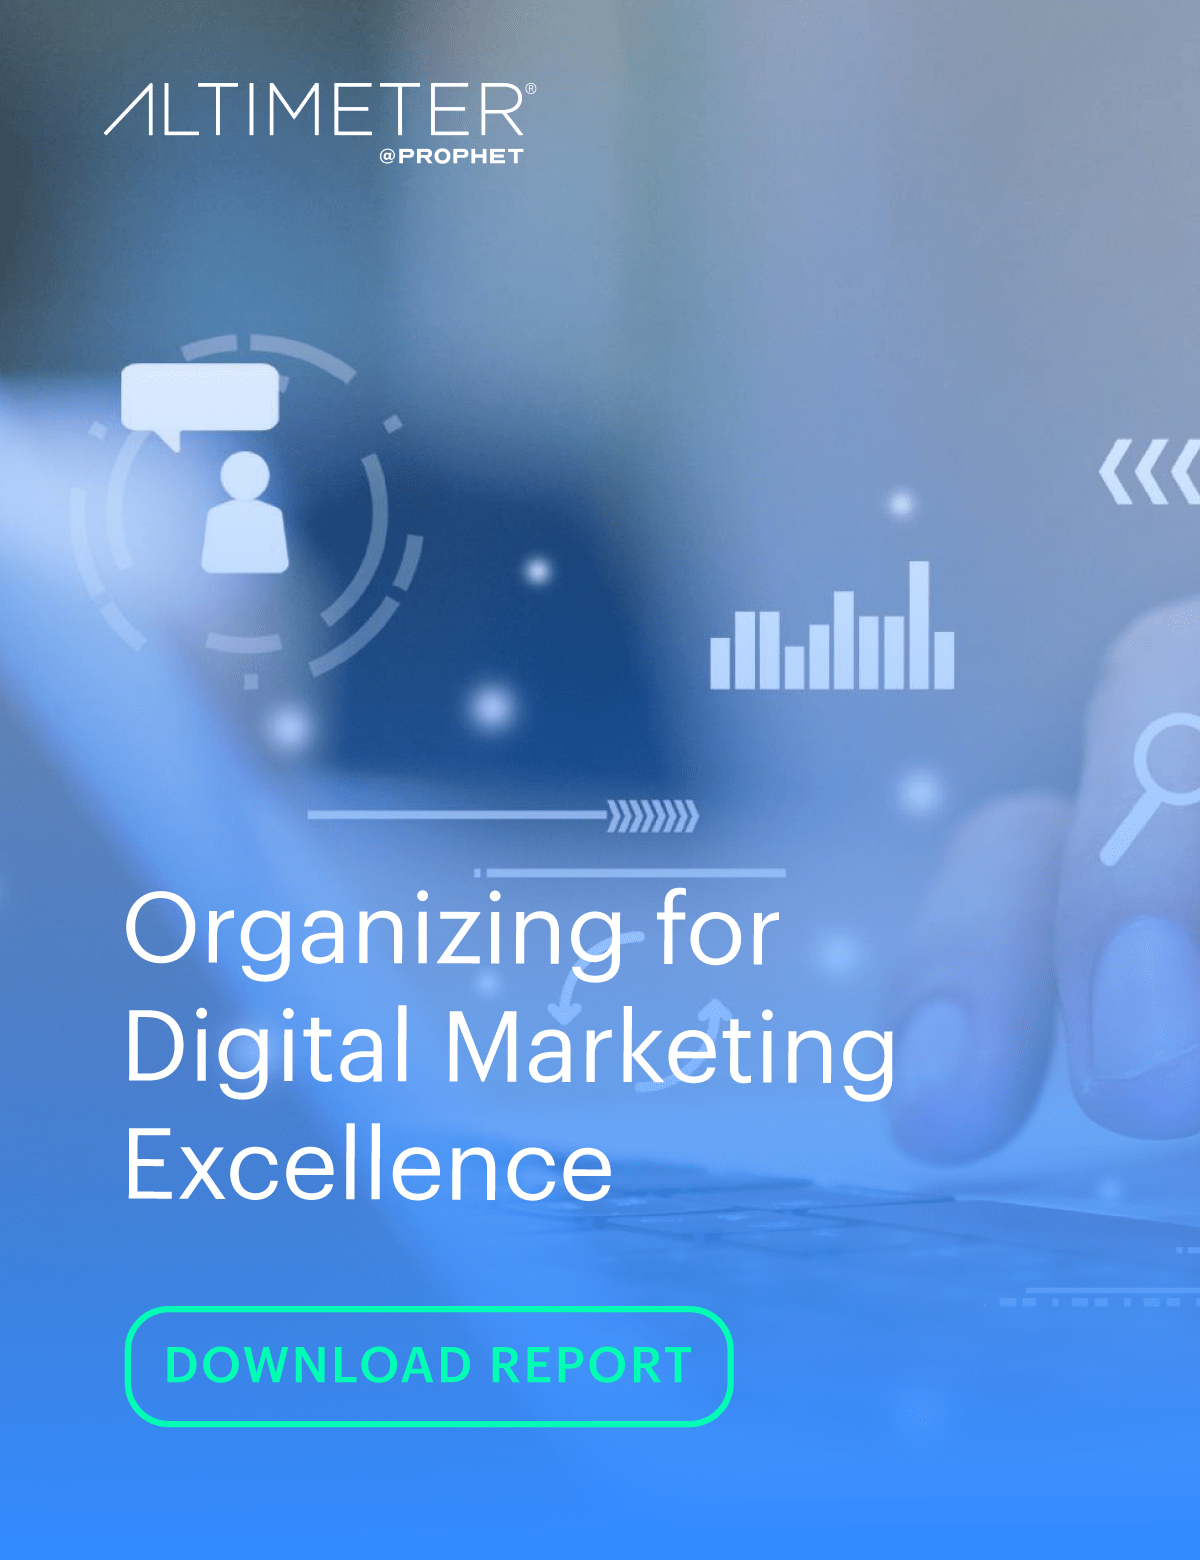 Altimeter Report: Organizing for Digital Marketing Excellence